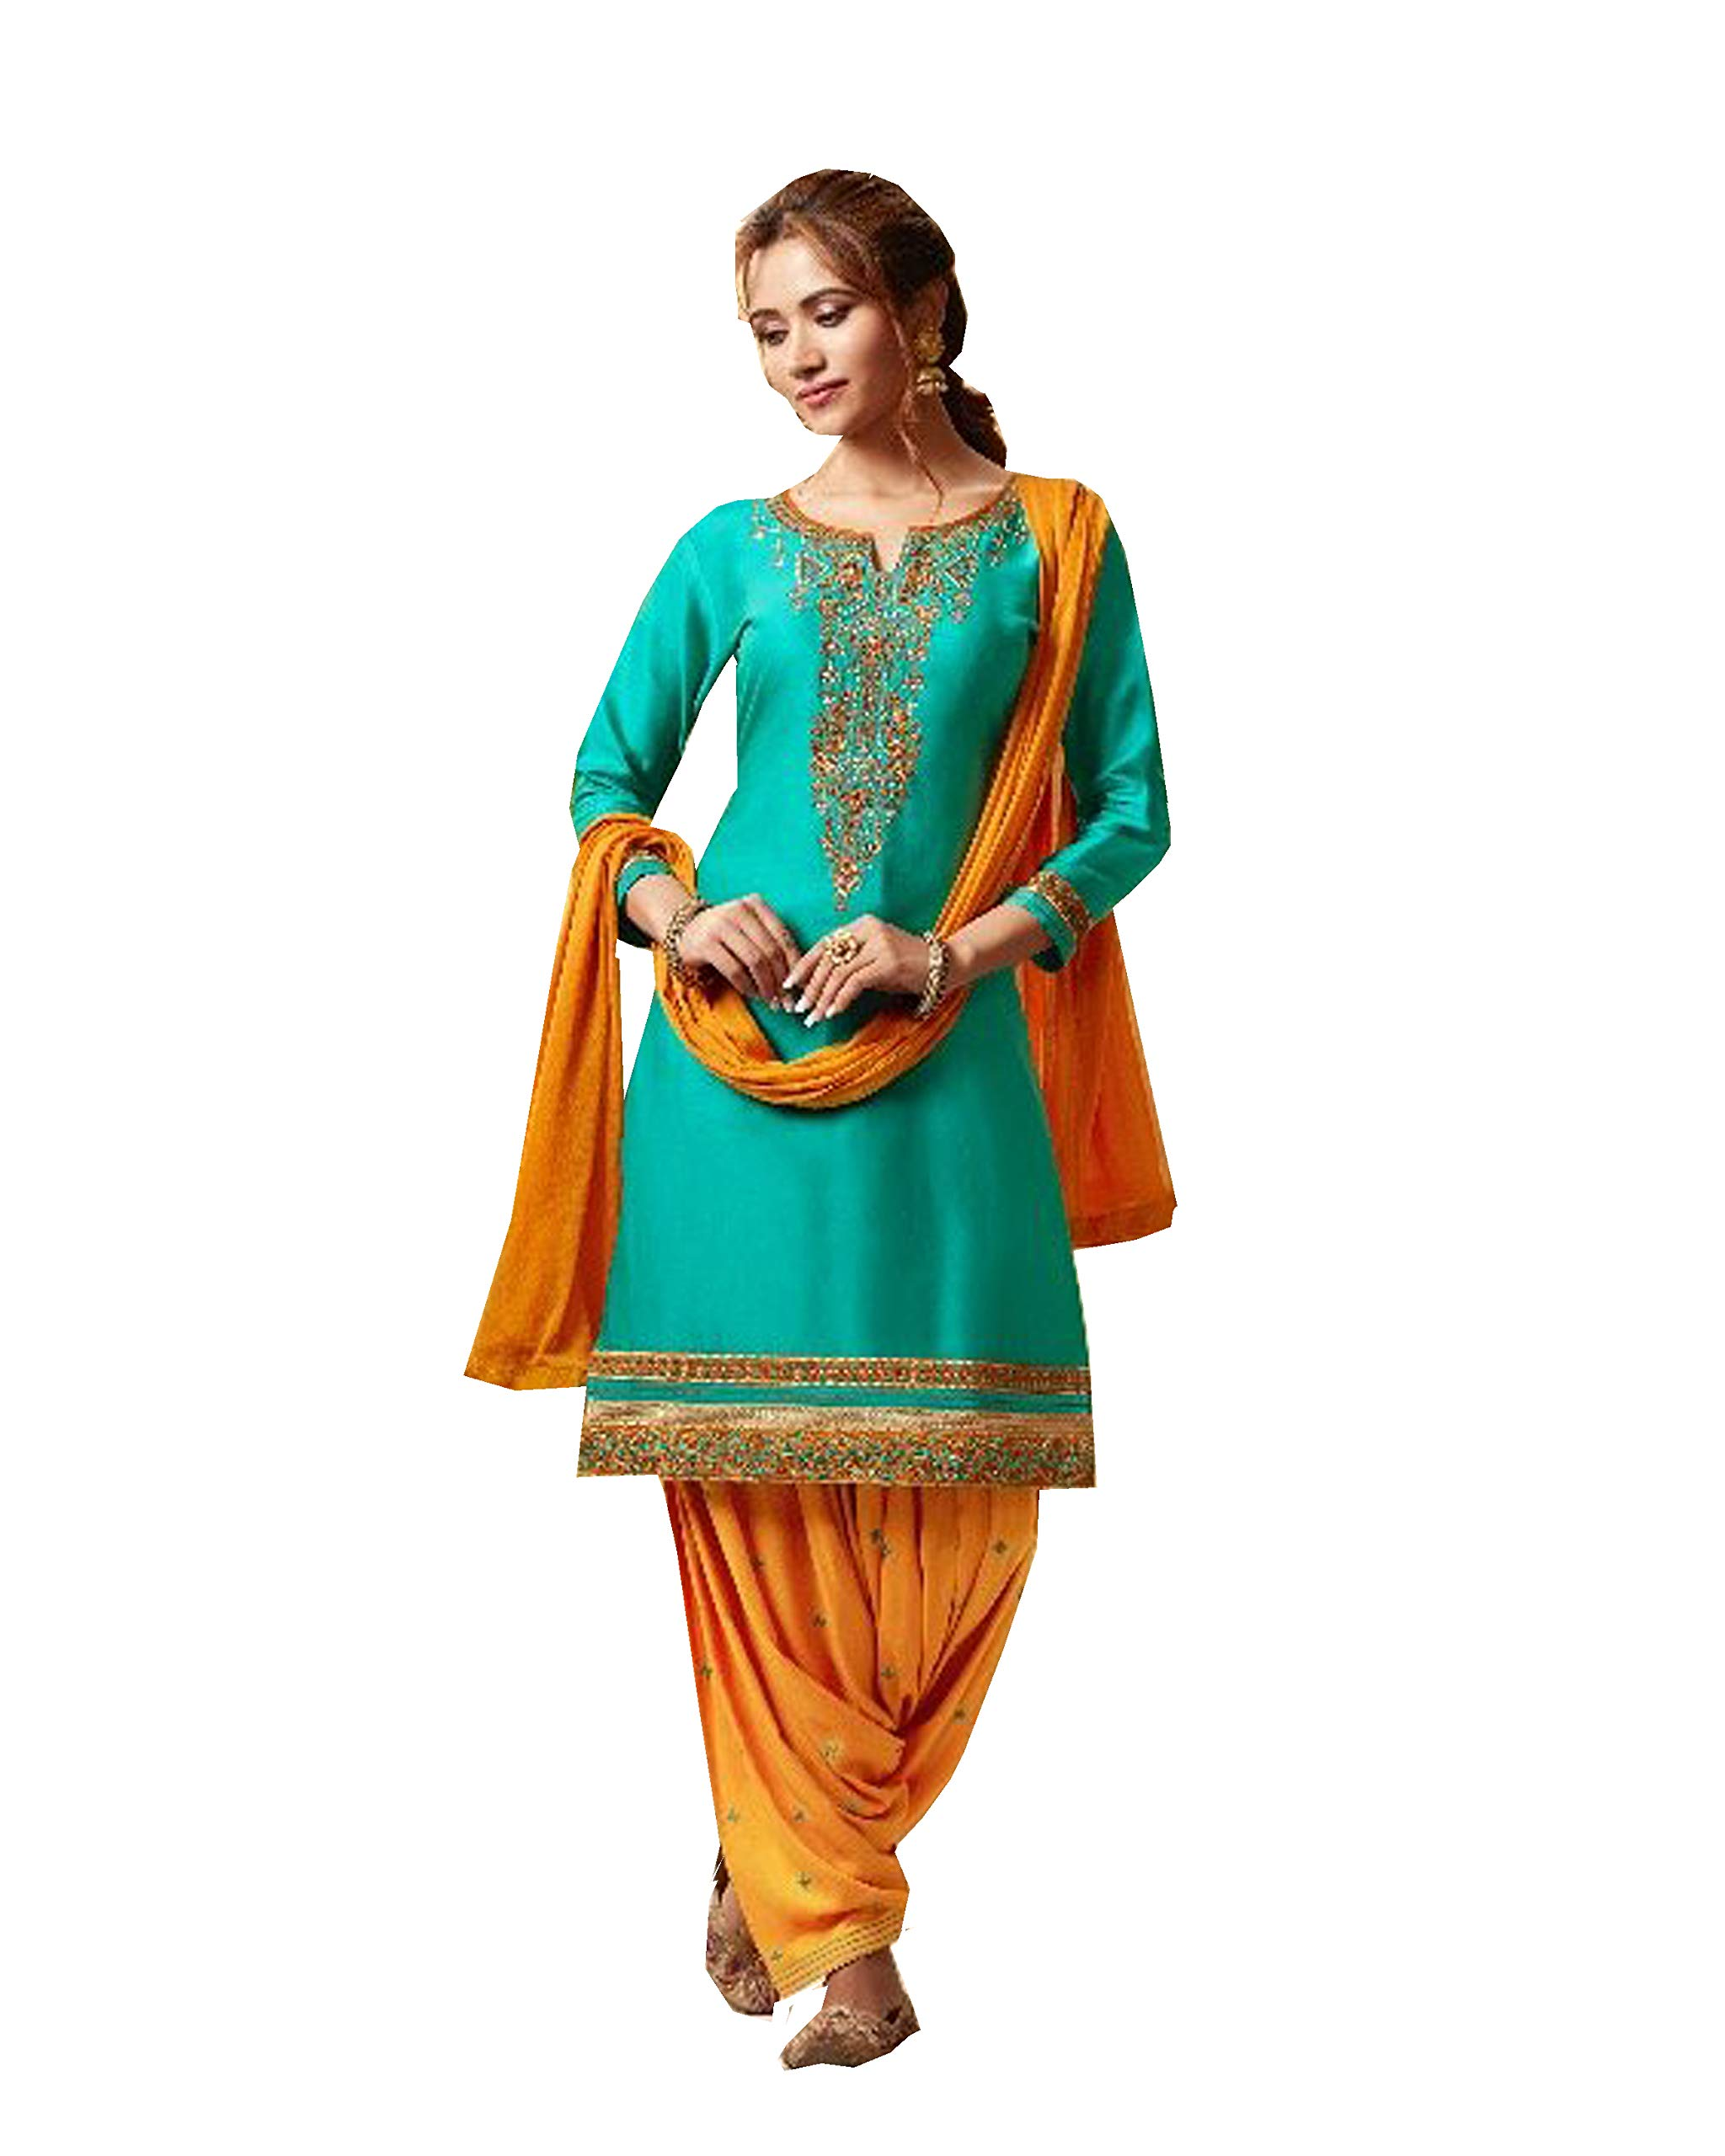 Ready to Wear Embroidered Cotton Punjabi Patiala Salwar Kameez for Womens (Turquoise, S-38)